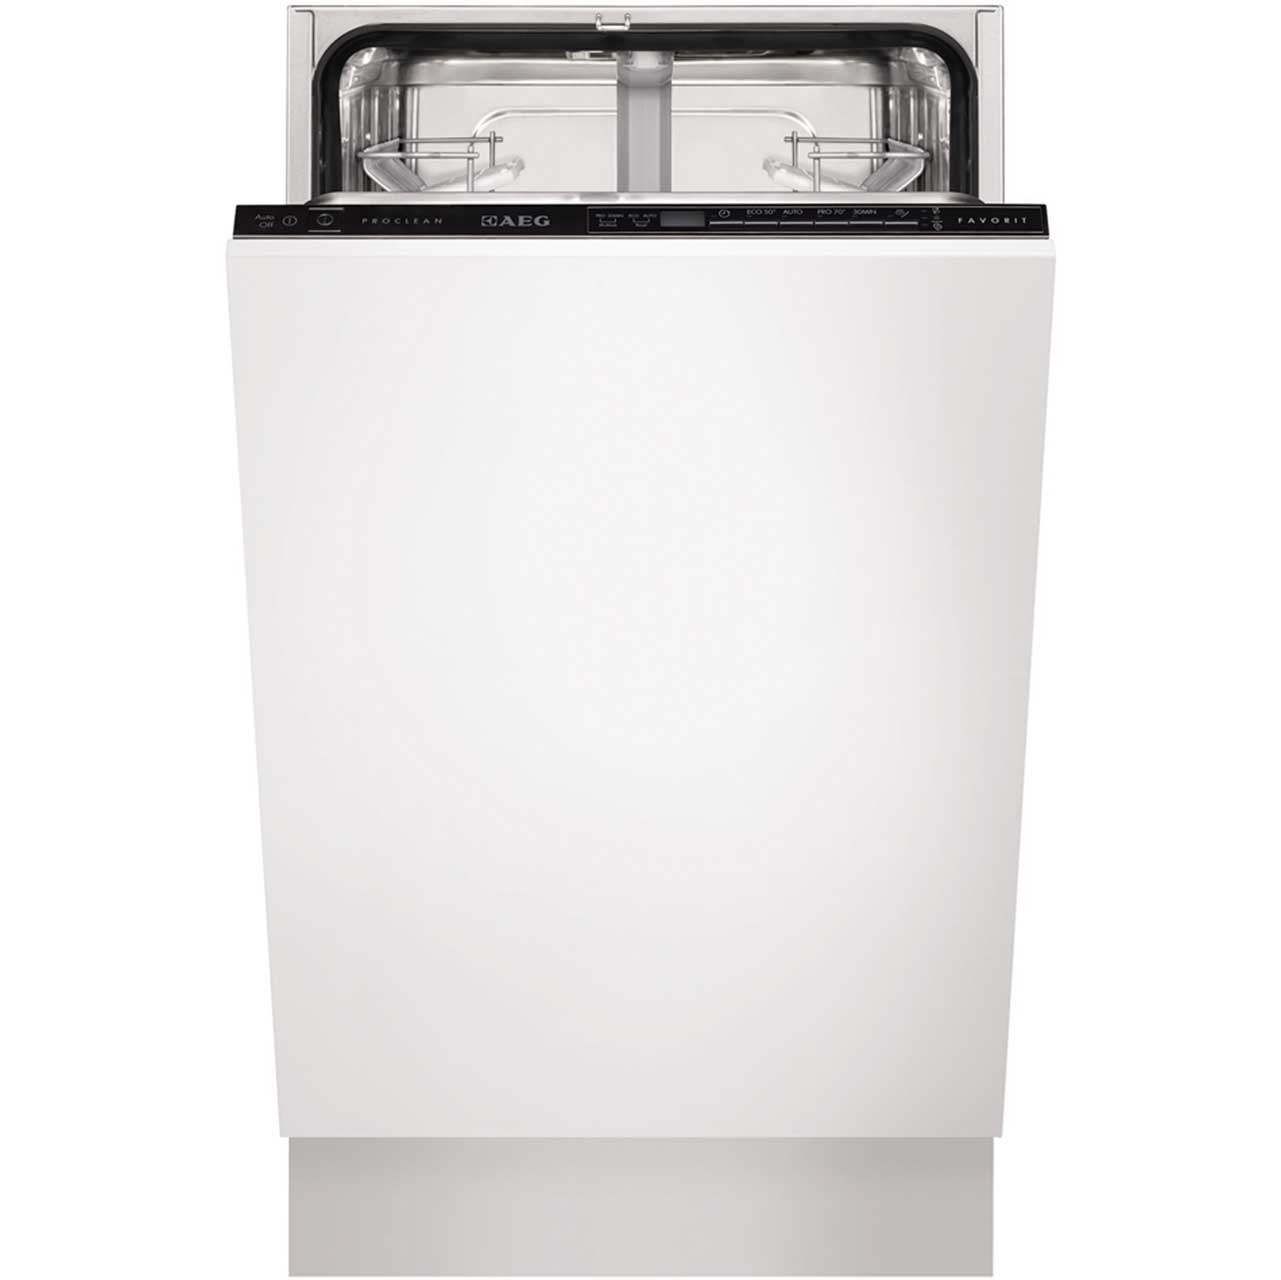 AEG Favorit F55412VI0 Integrated Slimline Dishwasher in White